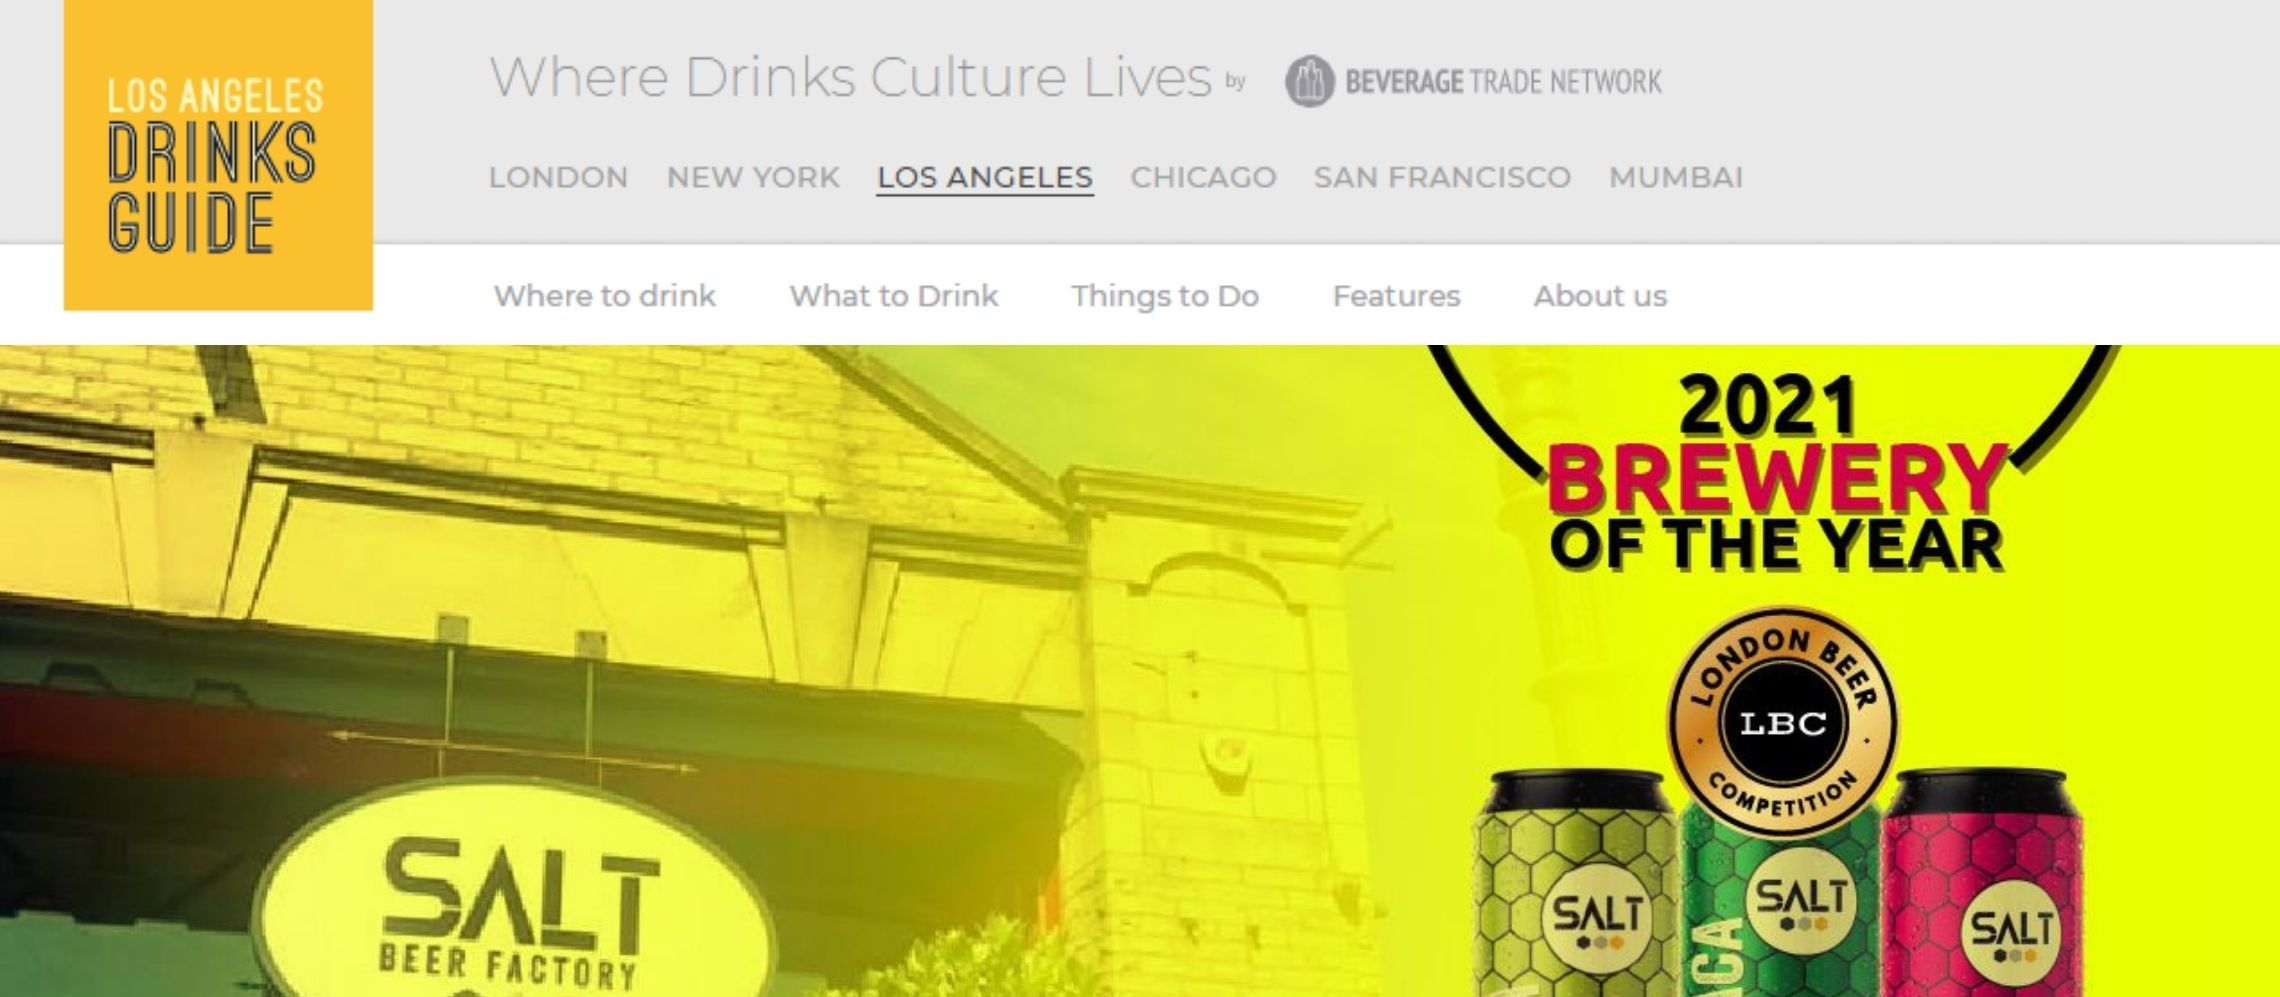 Photo for: Salt Beer Factory Wins Brewery of the Year - Via Los Angeles Drinks Guide